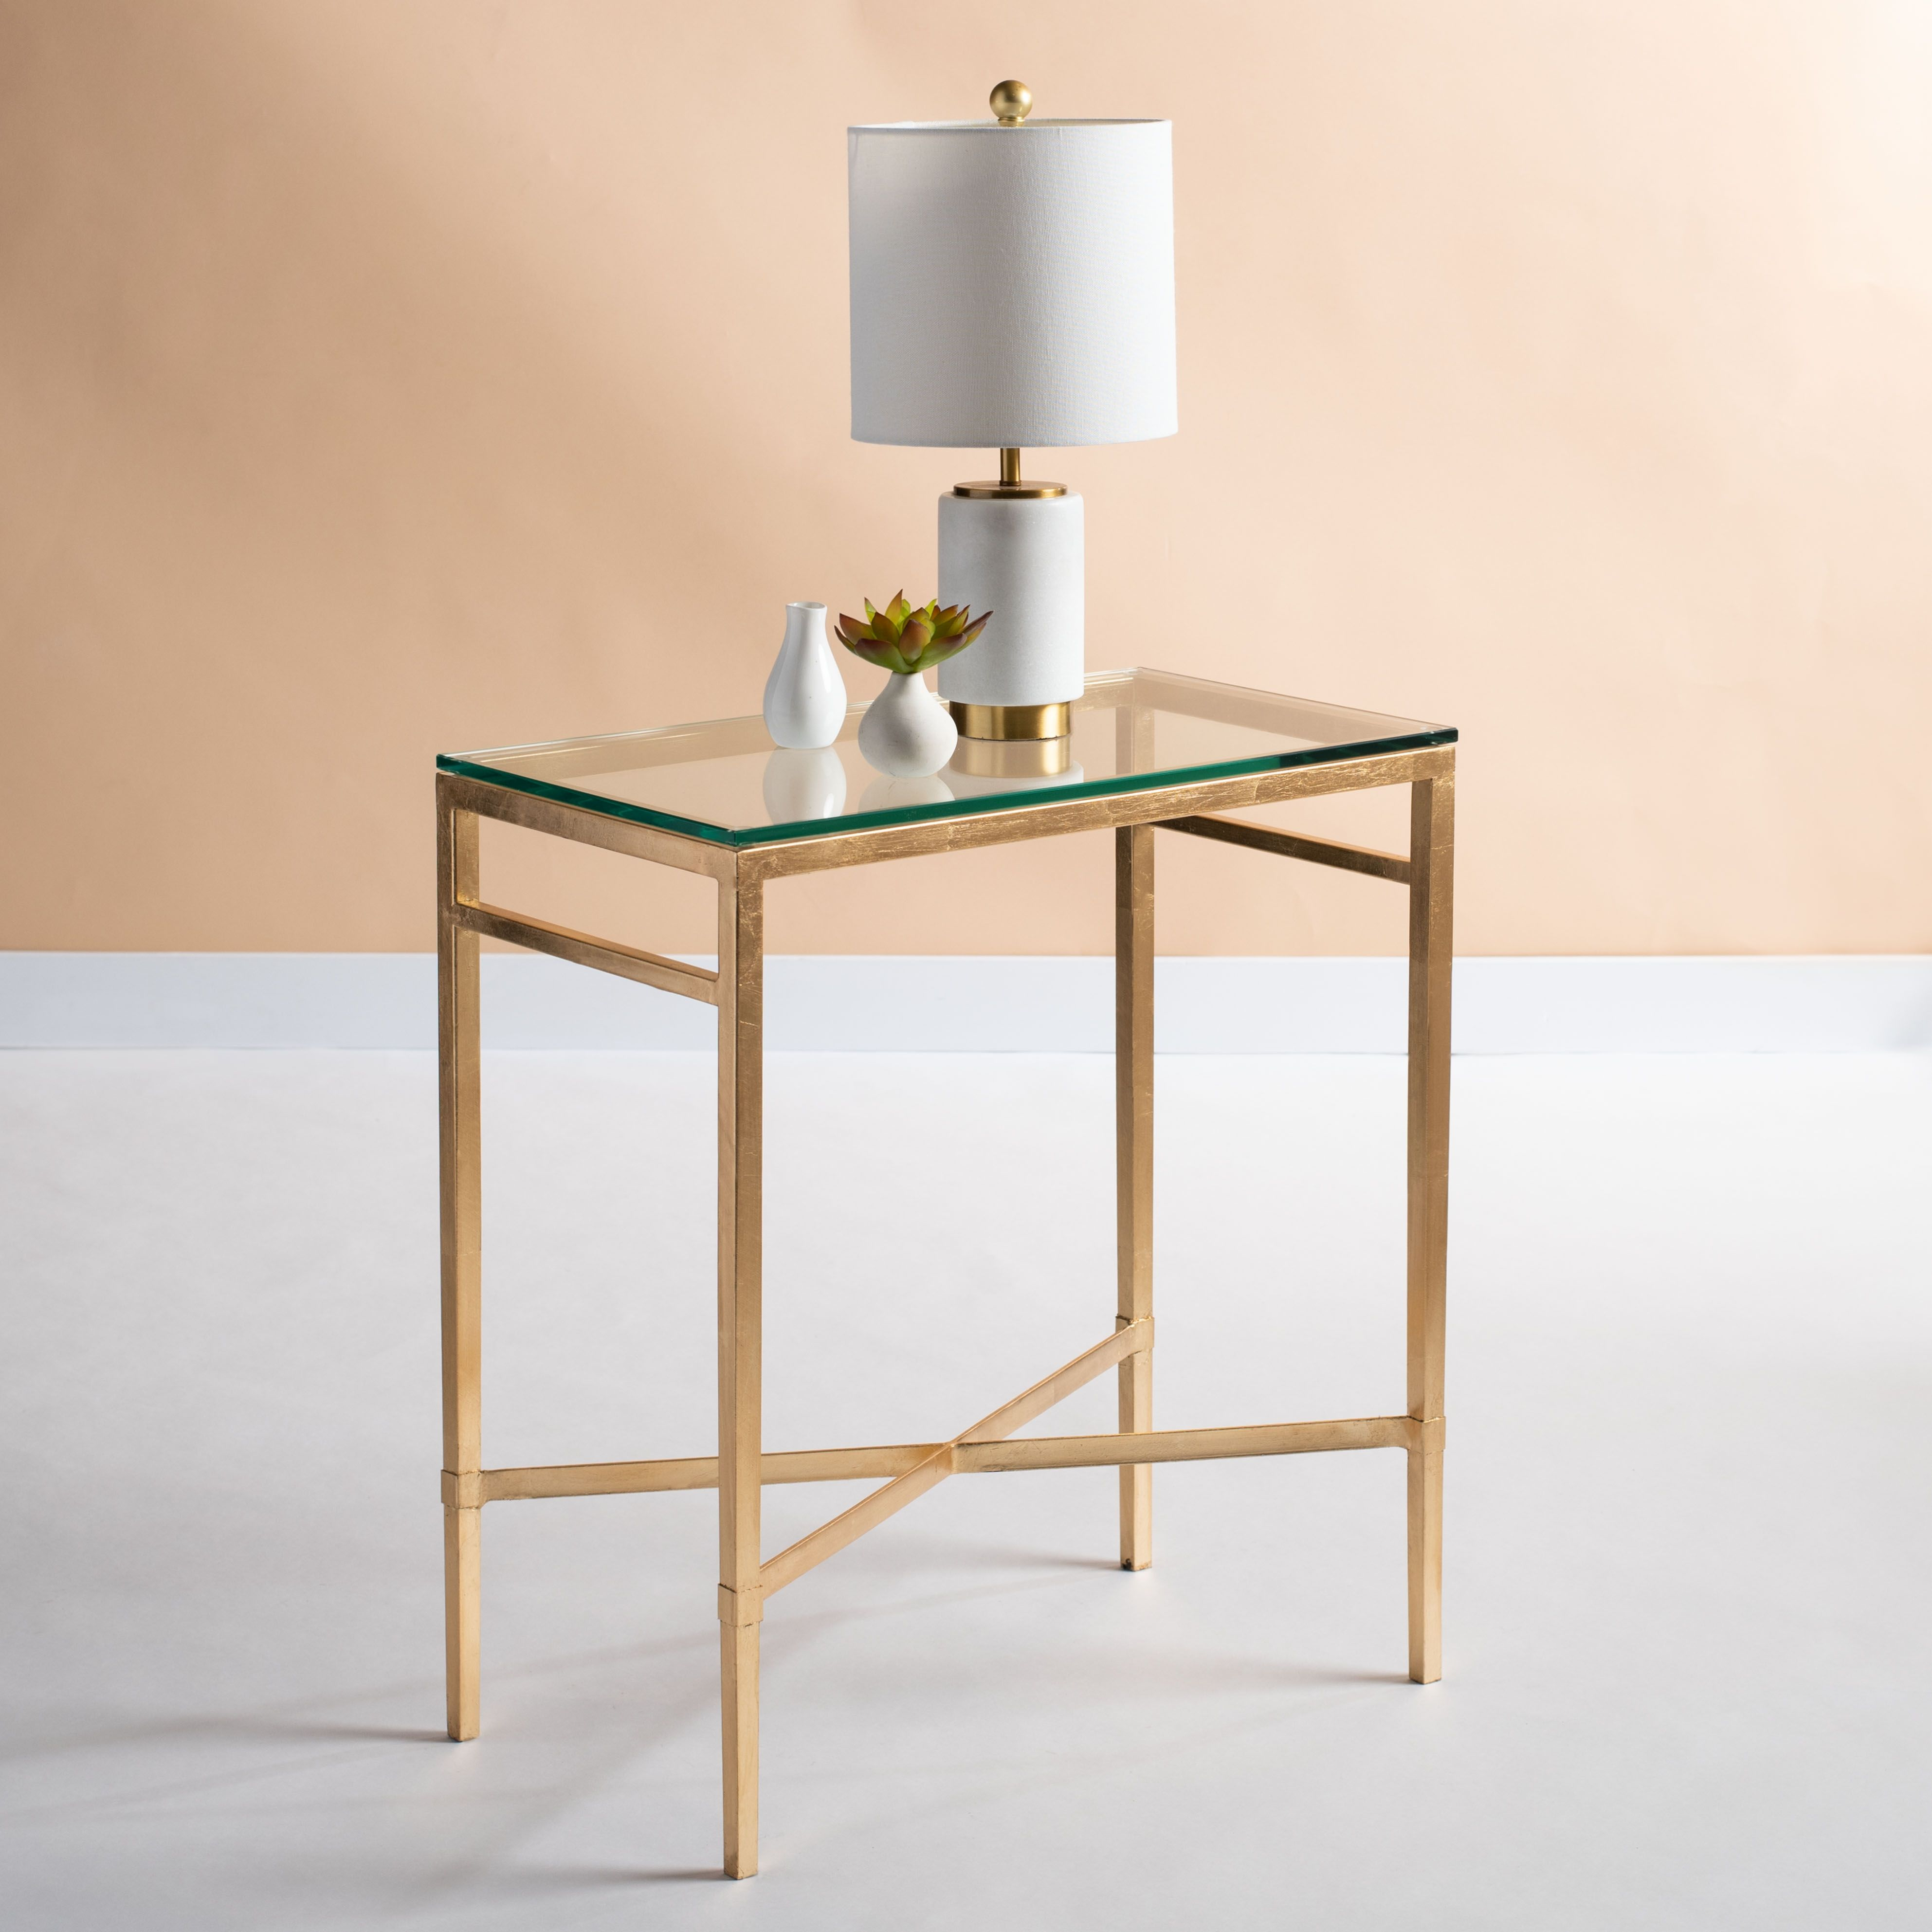 Safavieh Viggo Chair Accent Table Ashley Furniture Homestore In 2021 Glass Top End Tables Glass Side Tables Metal Accent Table